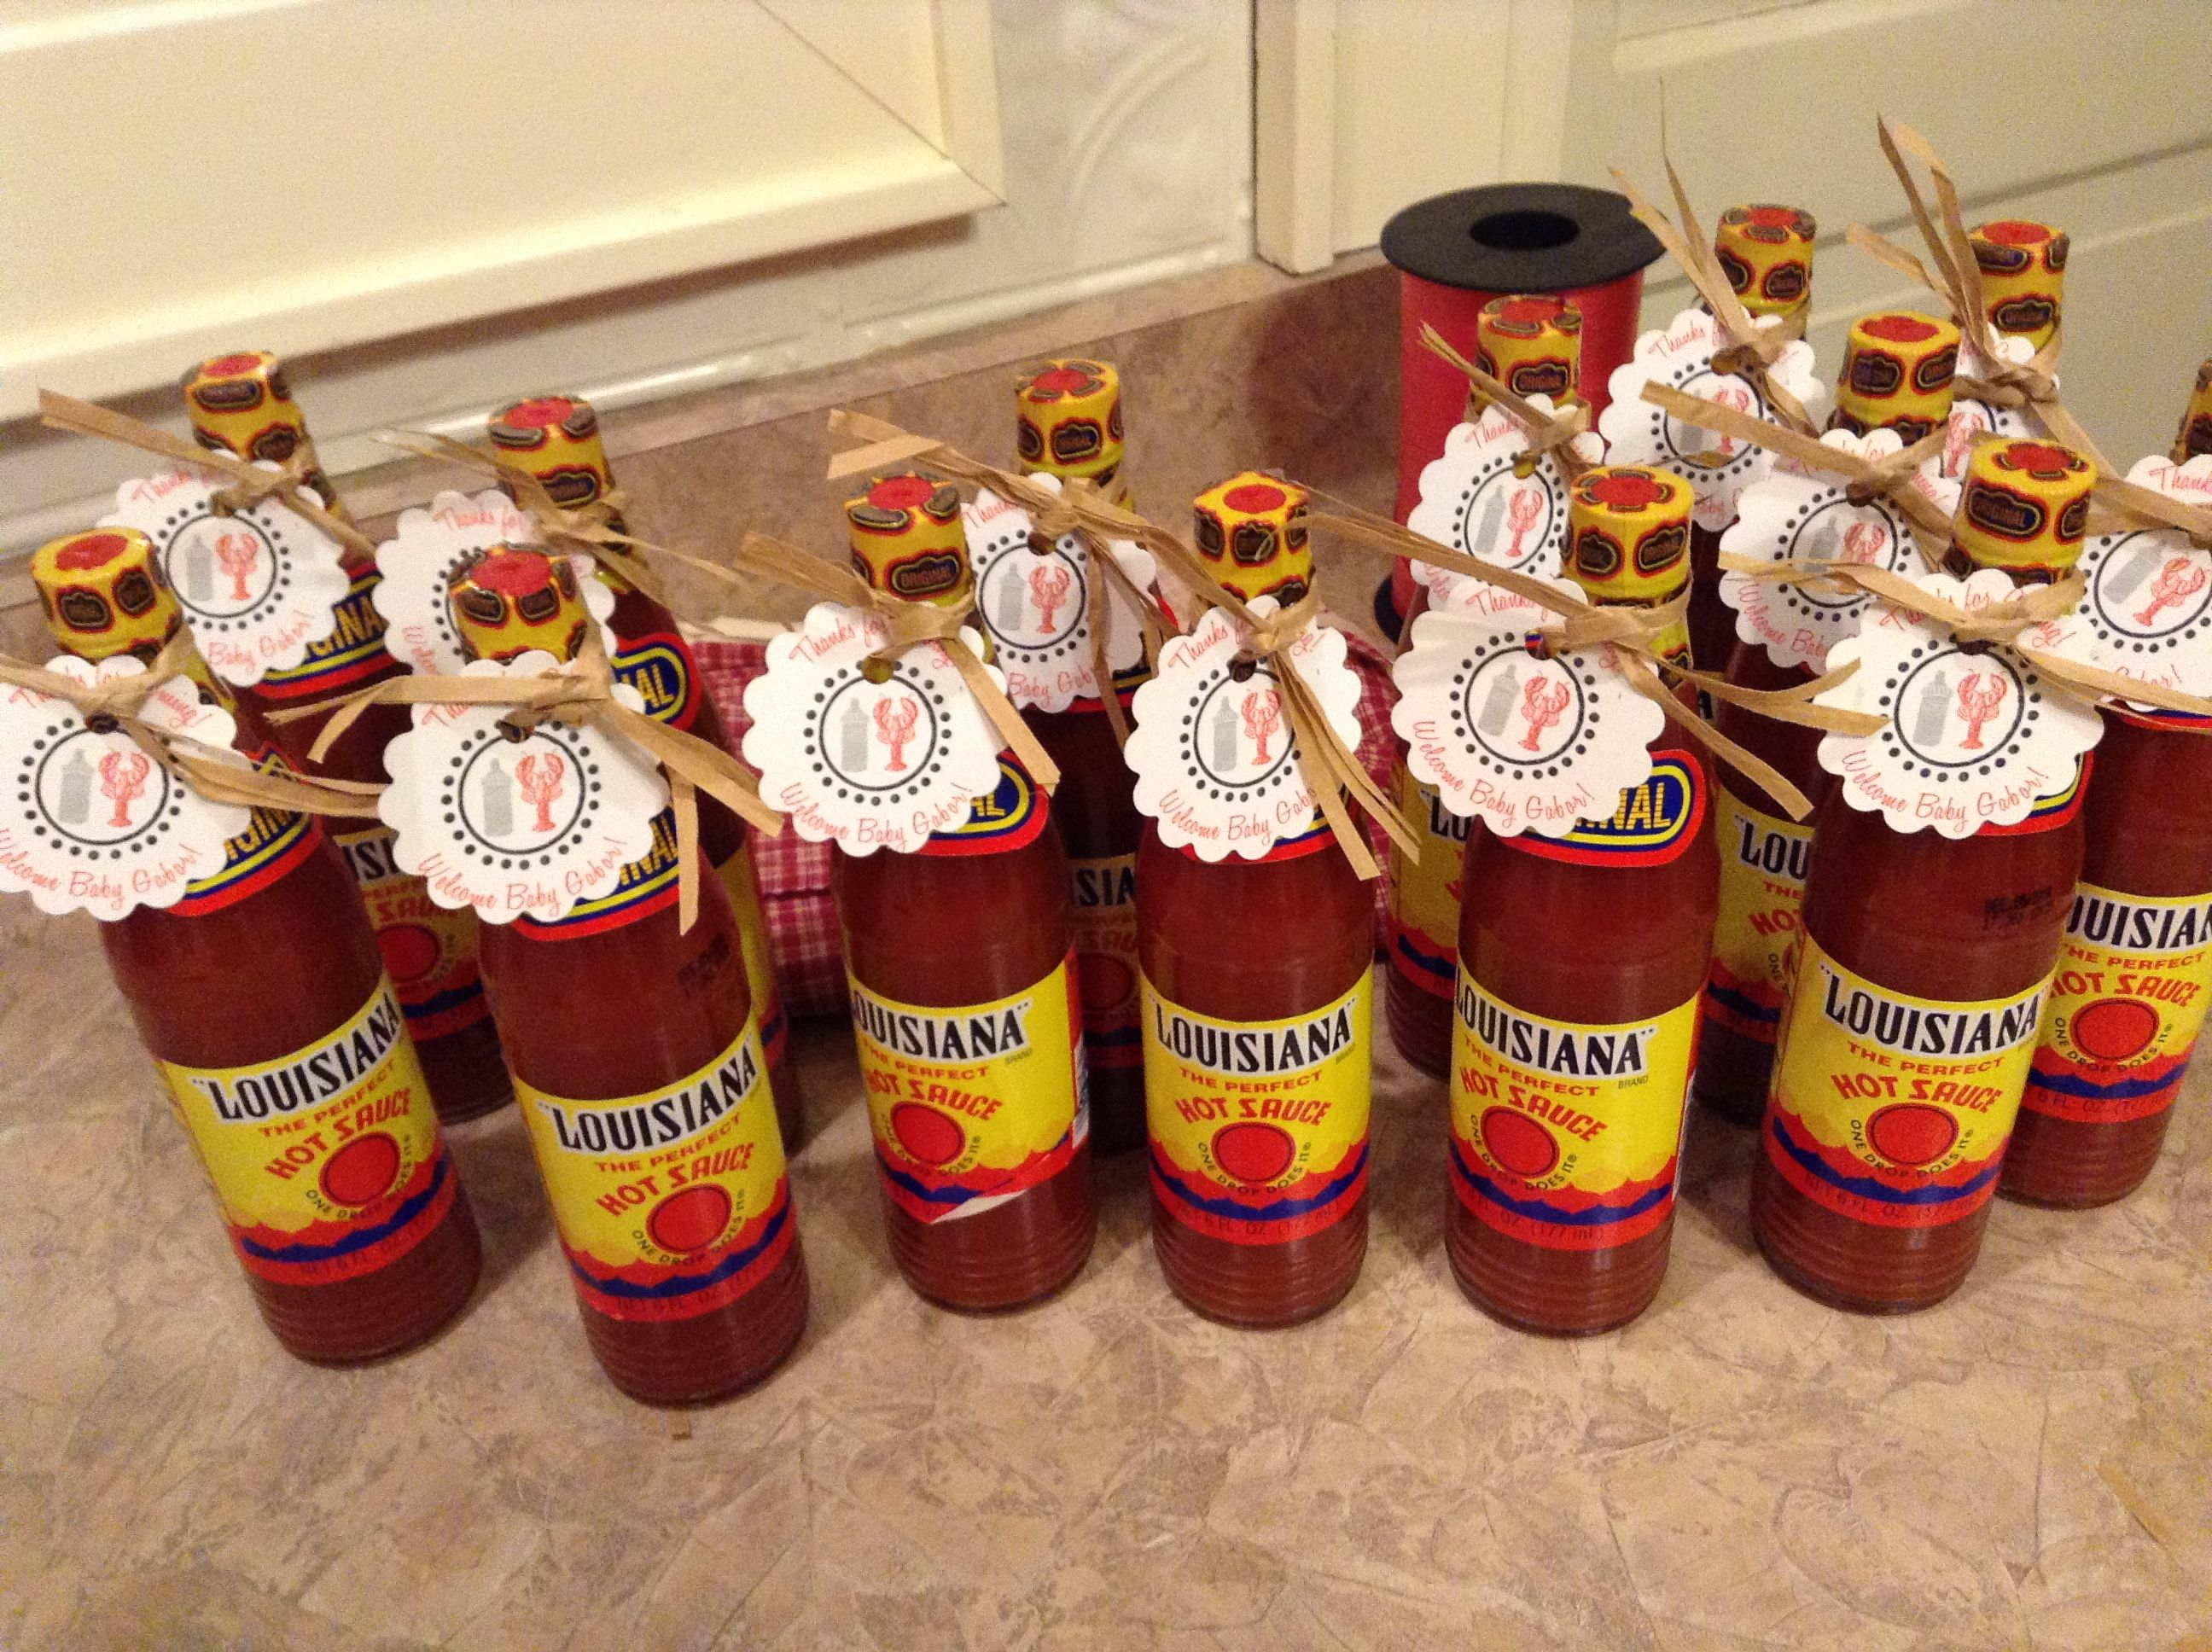 Crawfish Boil Baby Shower Favors 62 Cents Each At Walmart Seafood Lobster Crab Boil